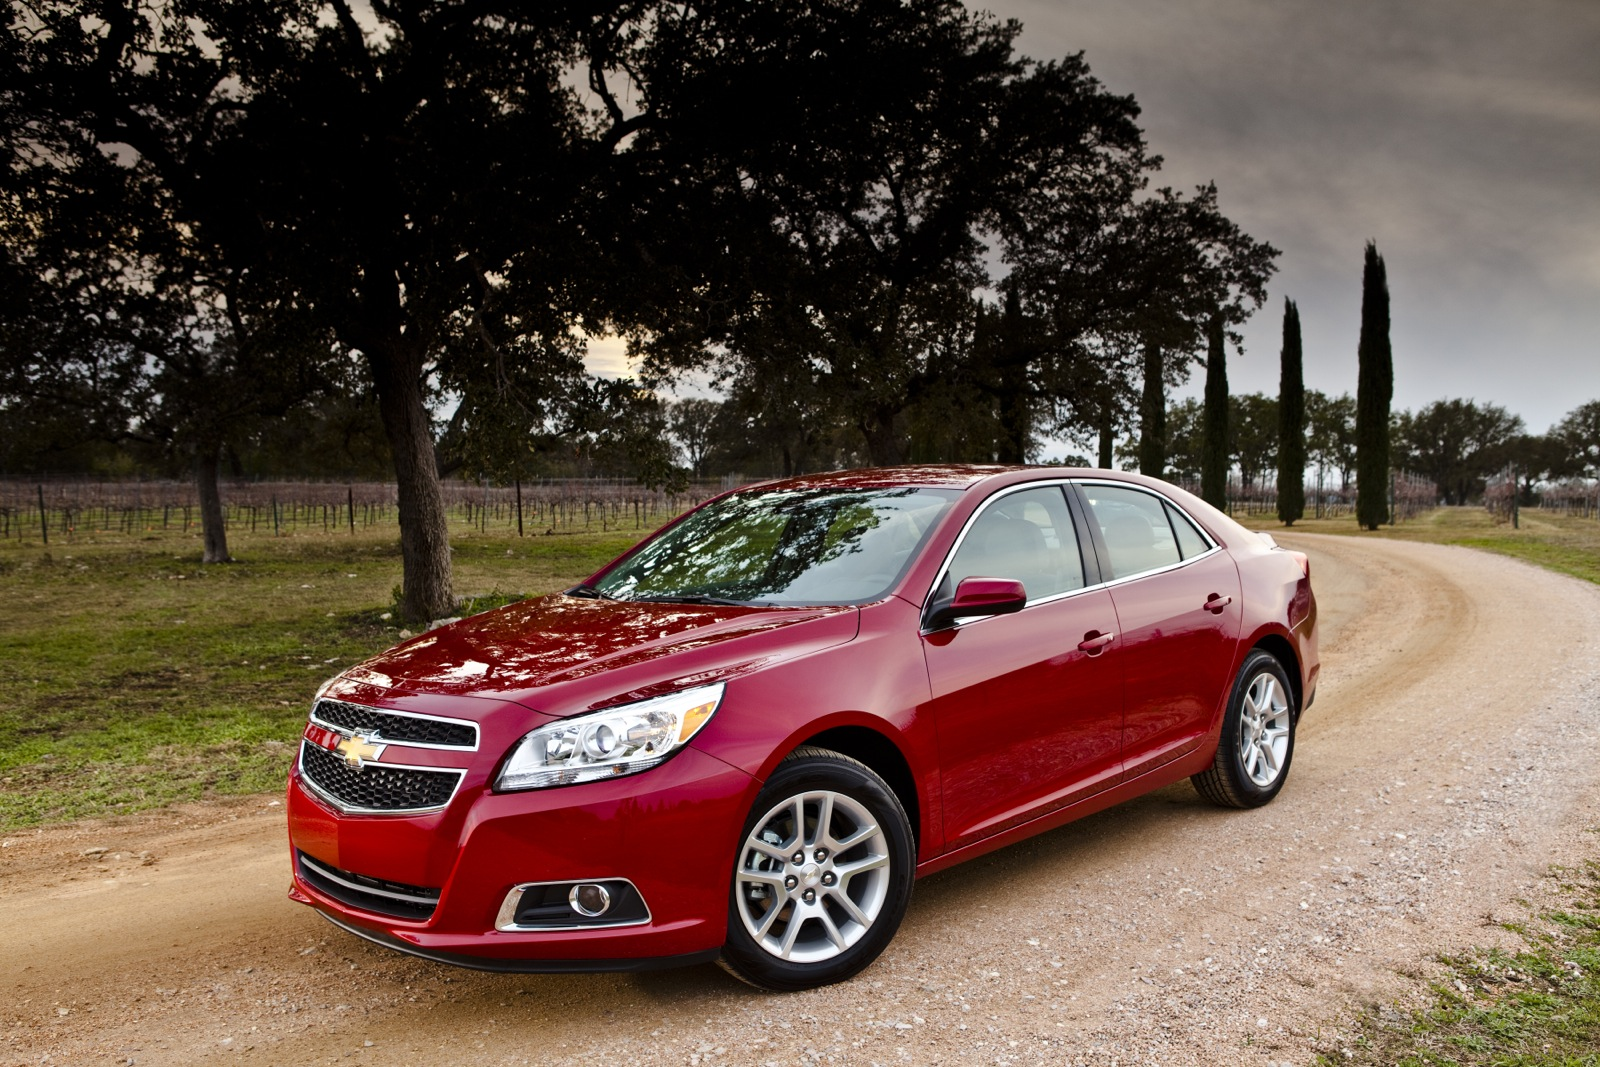 Cars For Sale In Colorado Springs >> 2013 Chevrolet Malibu (Chevy) Gas Mileage - The Car Connection